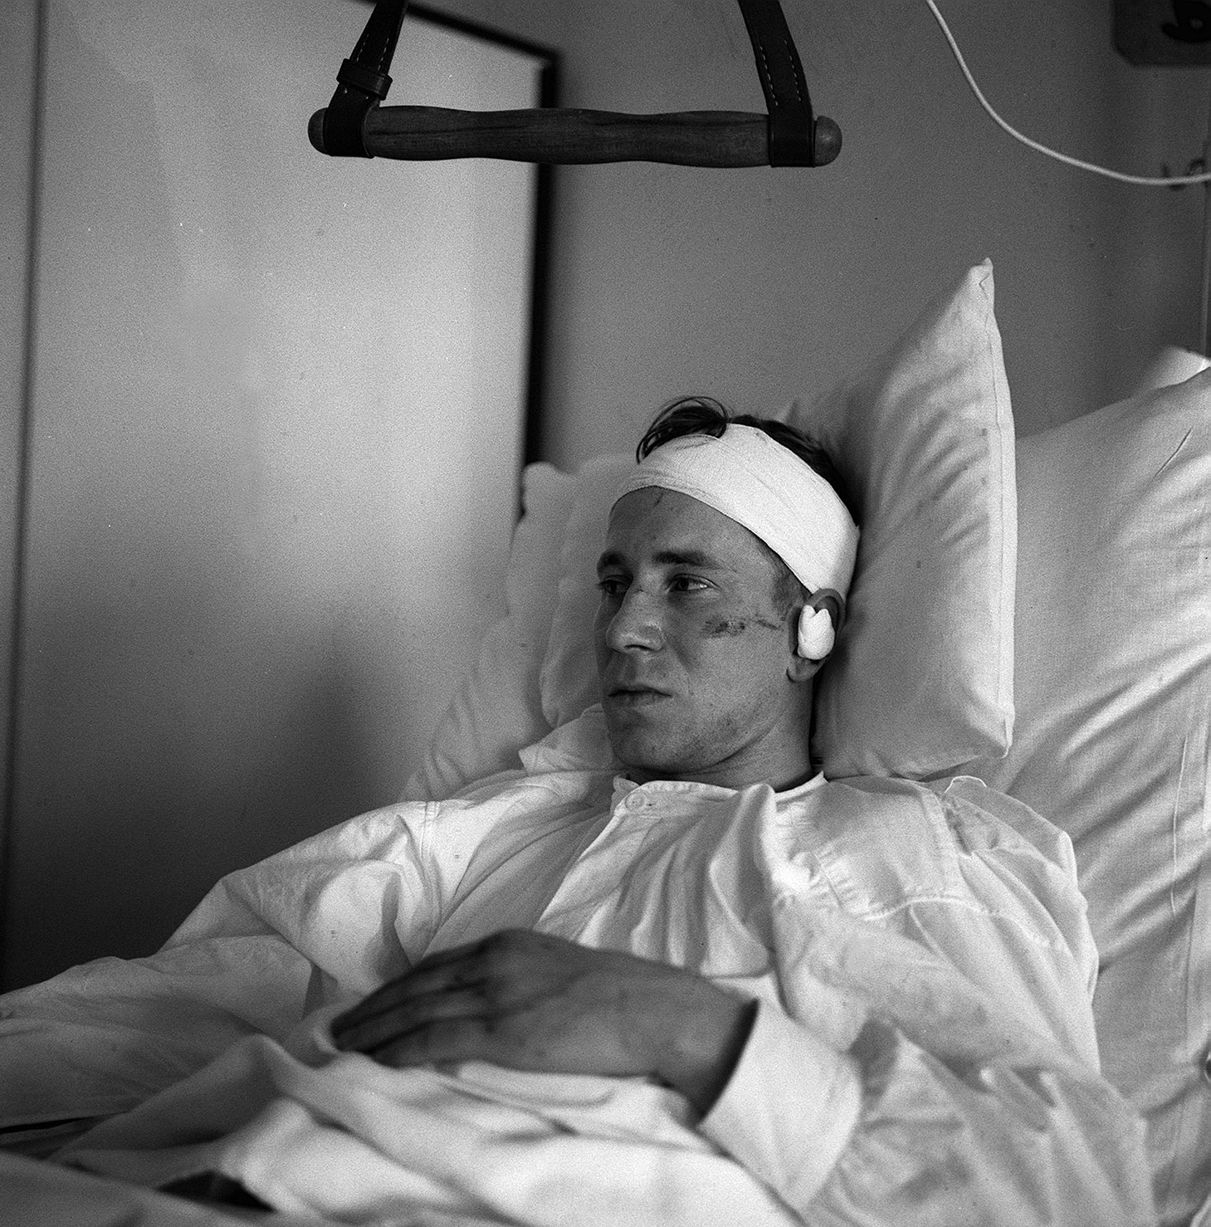 Bobby Charlton lays in hospital injured February 1958 who was injured in the Munich Air Disaster 19582 of 19